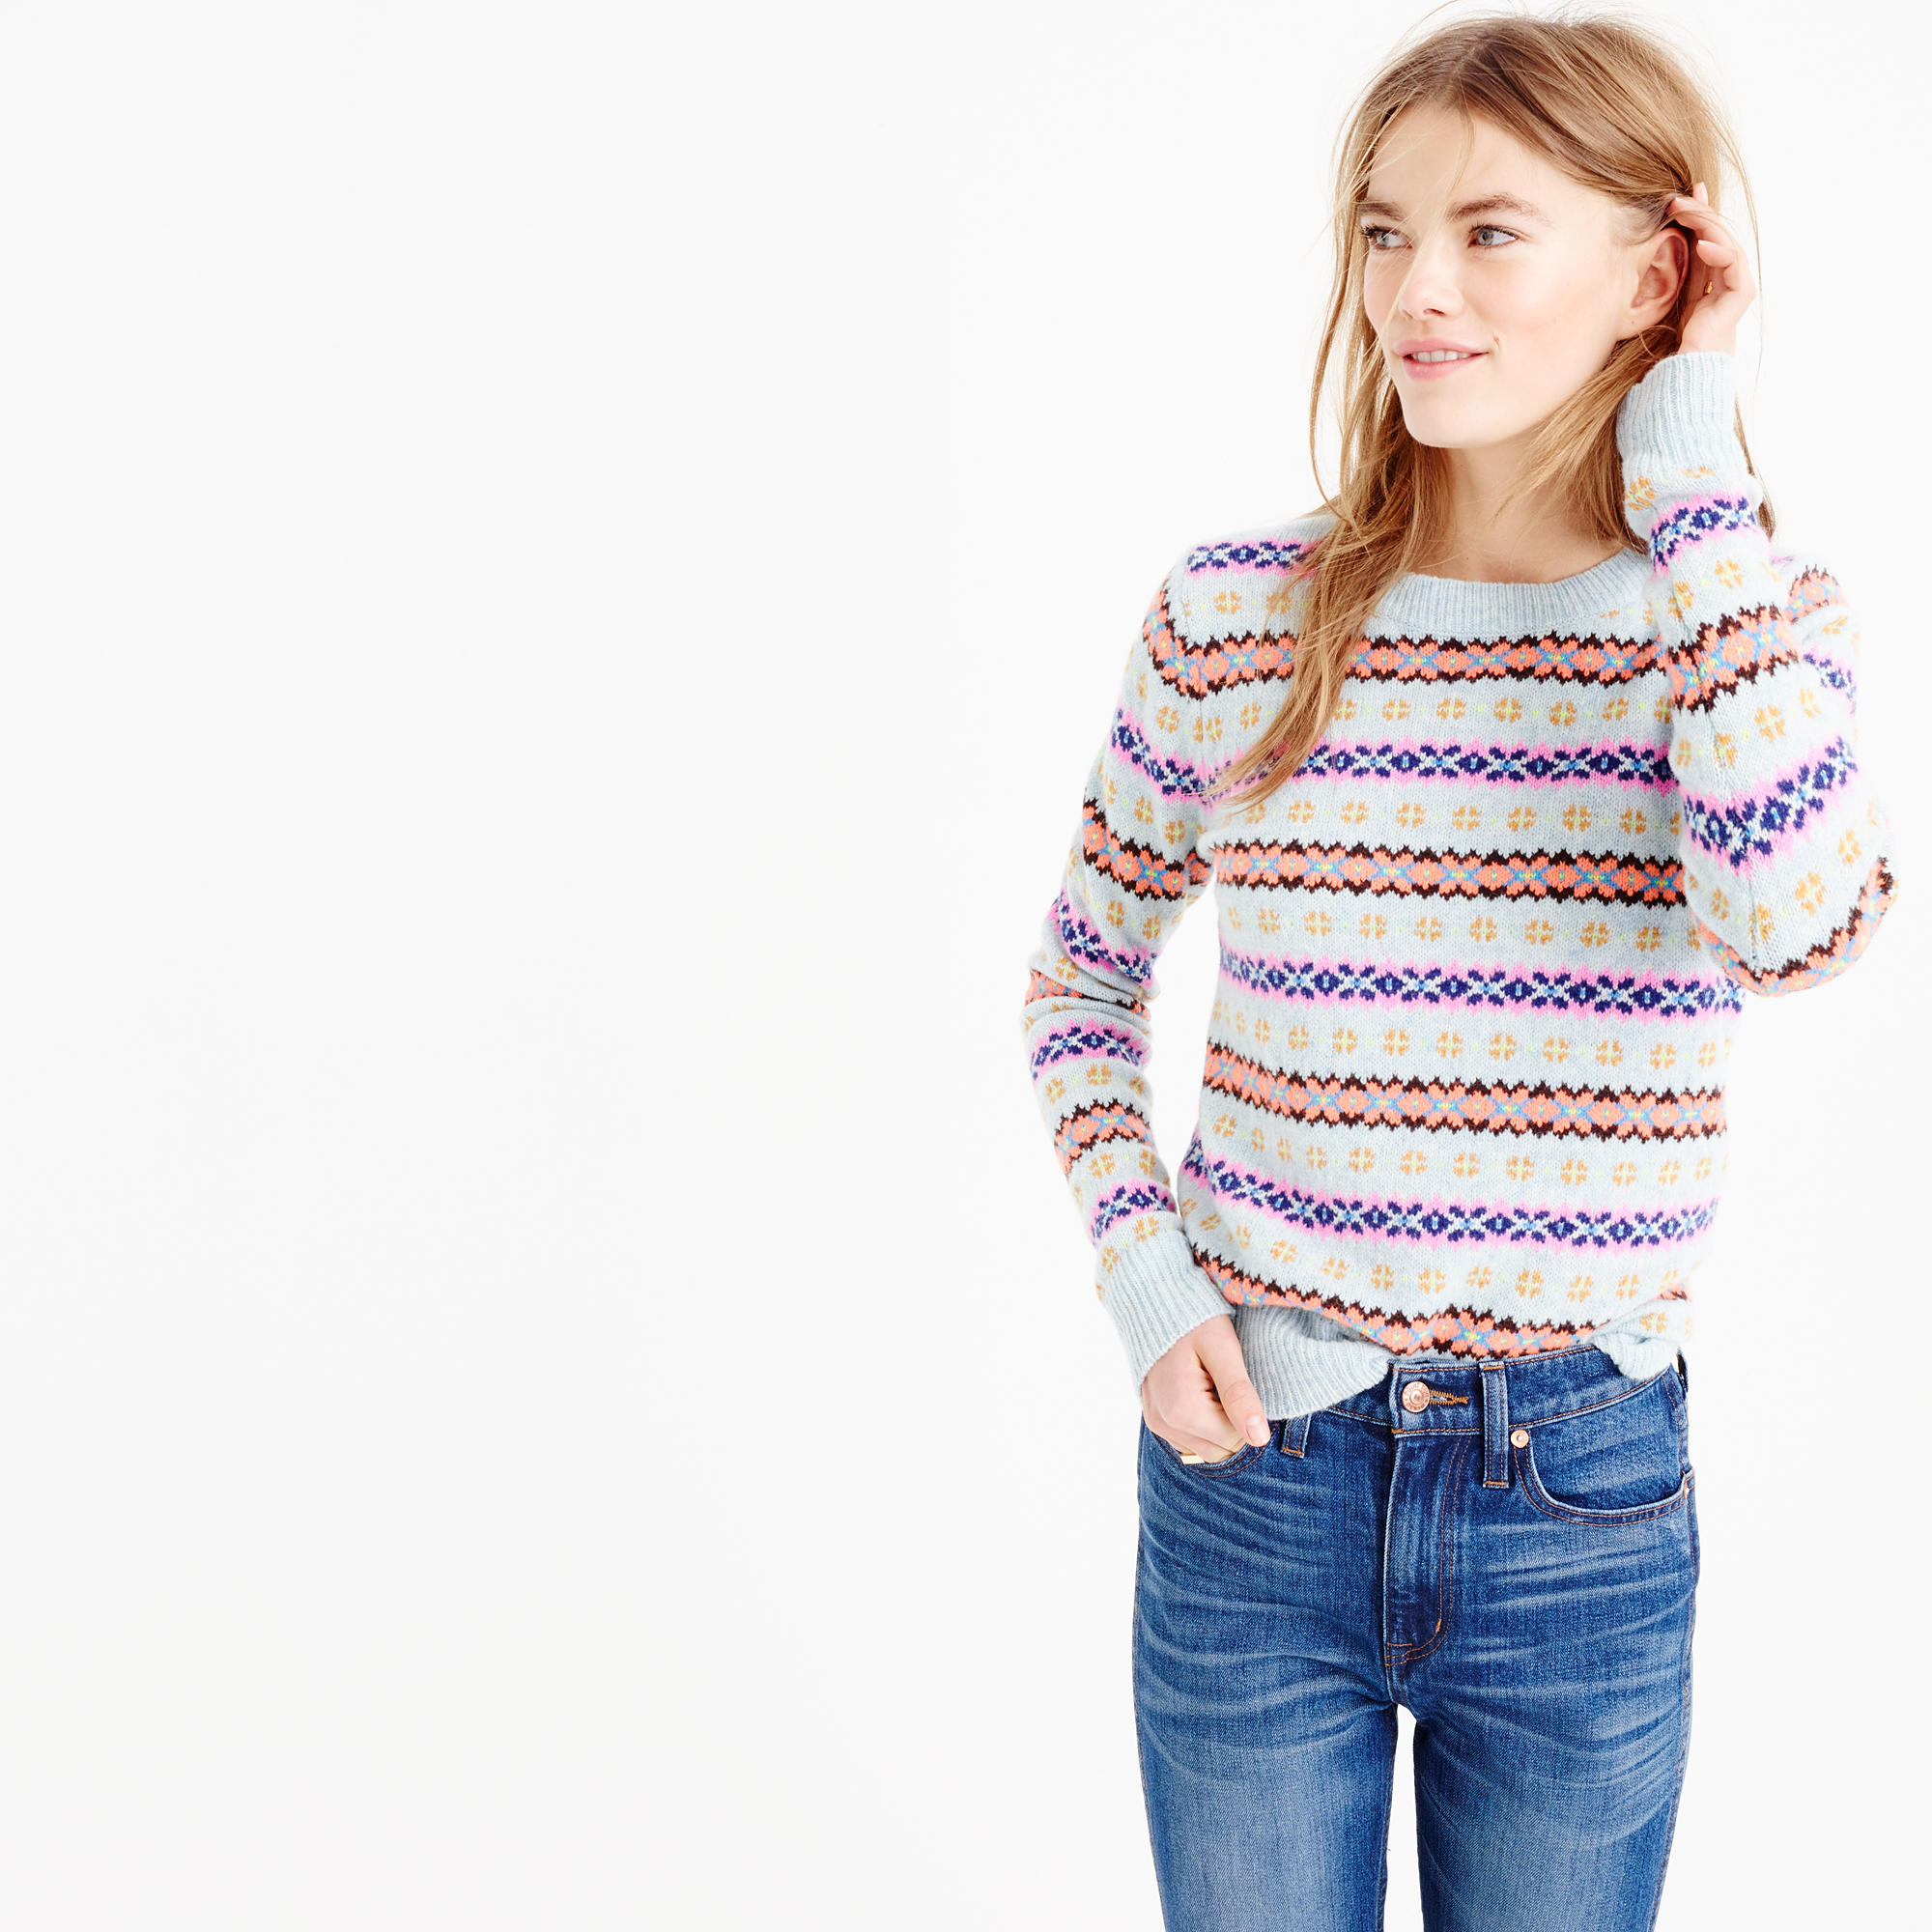 Wardrobe classic: the fair isle sweater - Girls of a Certain Age ...